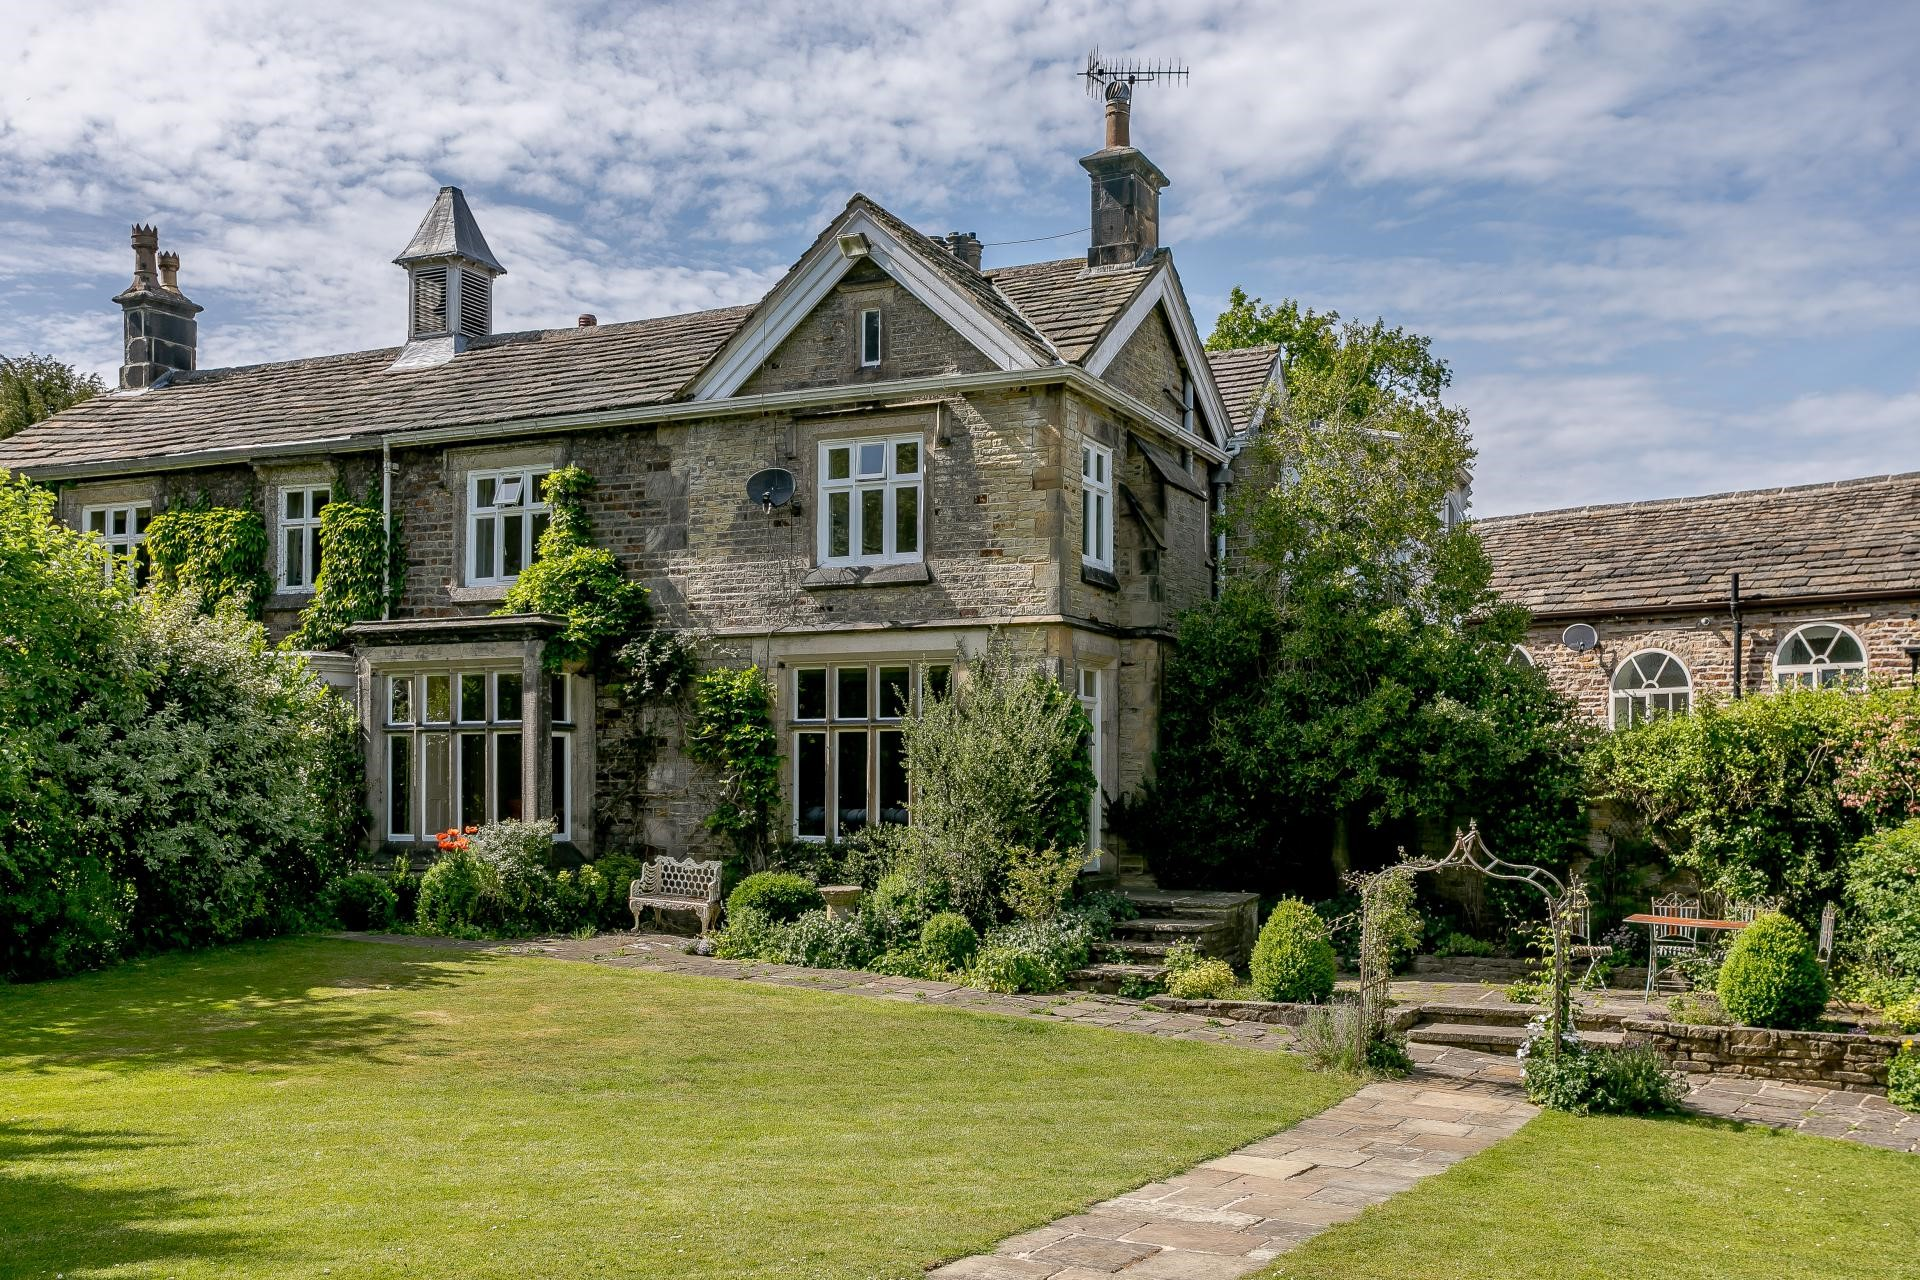 beautiful Victorian country home near Peak District National Park